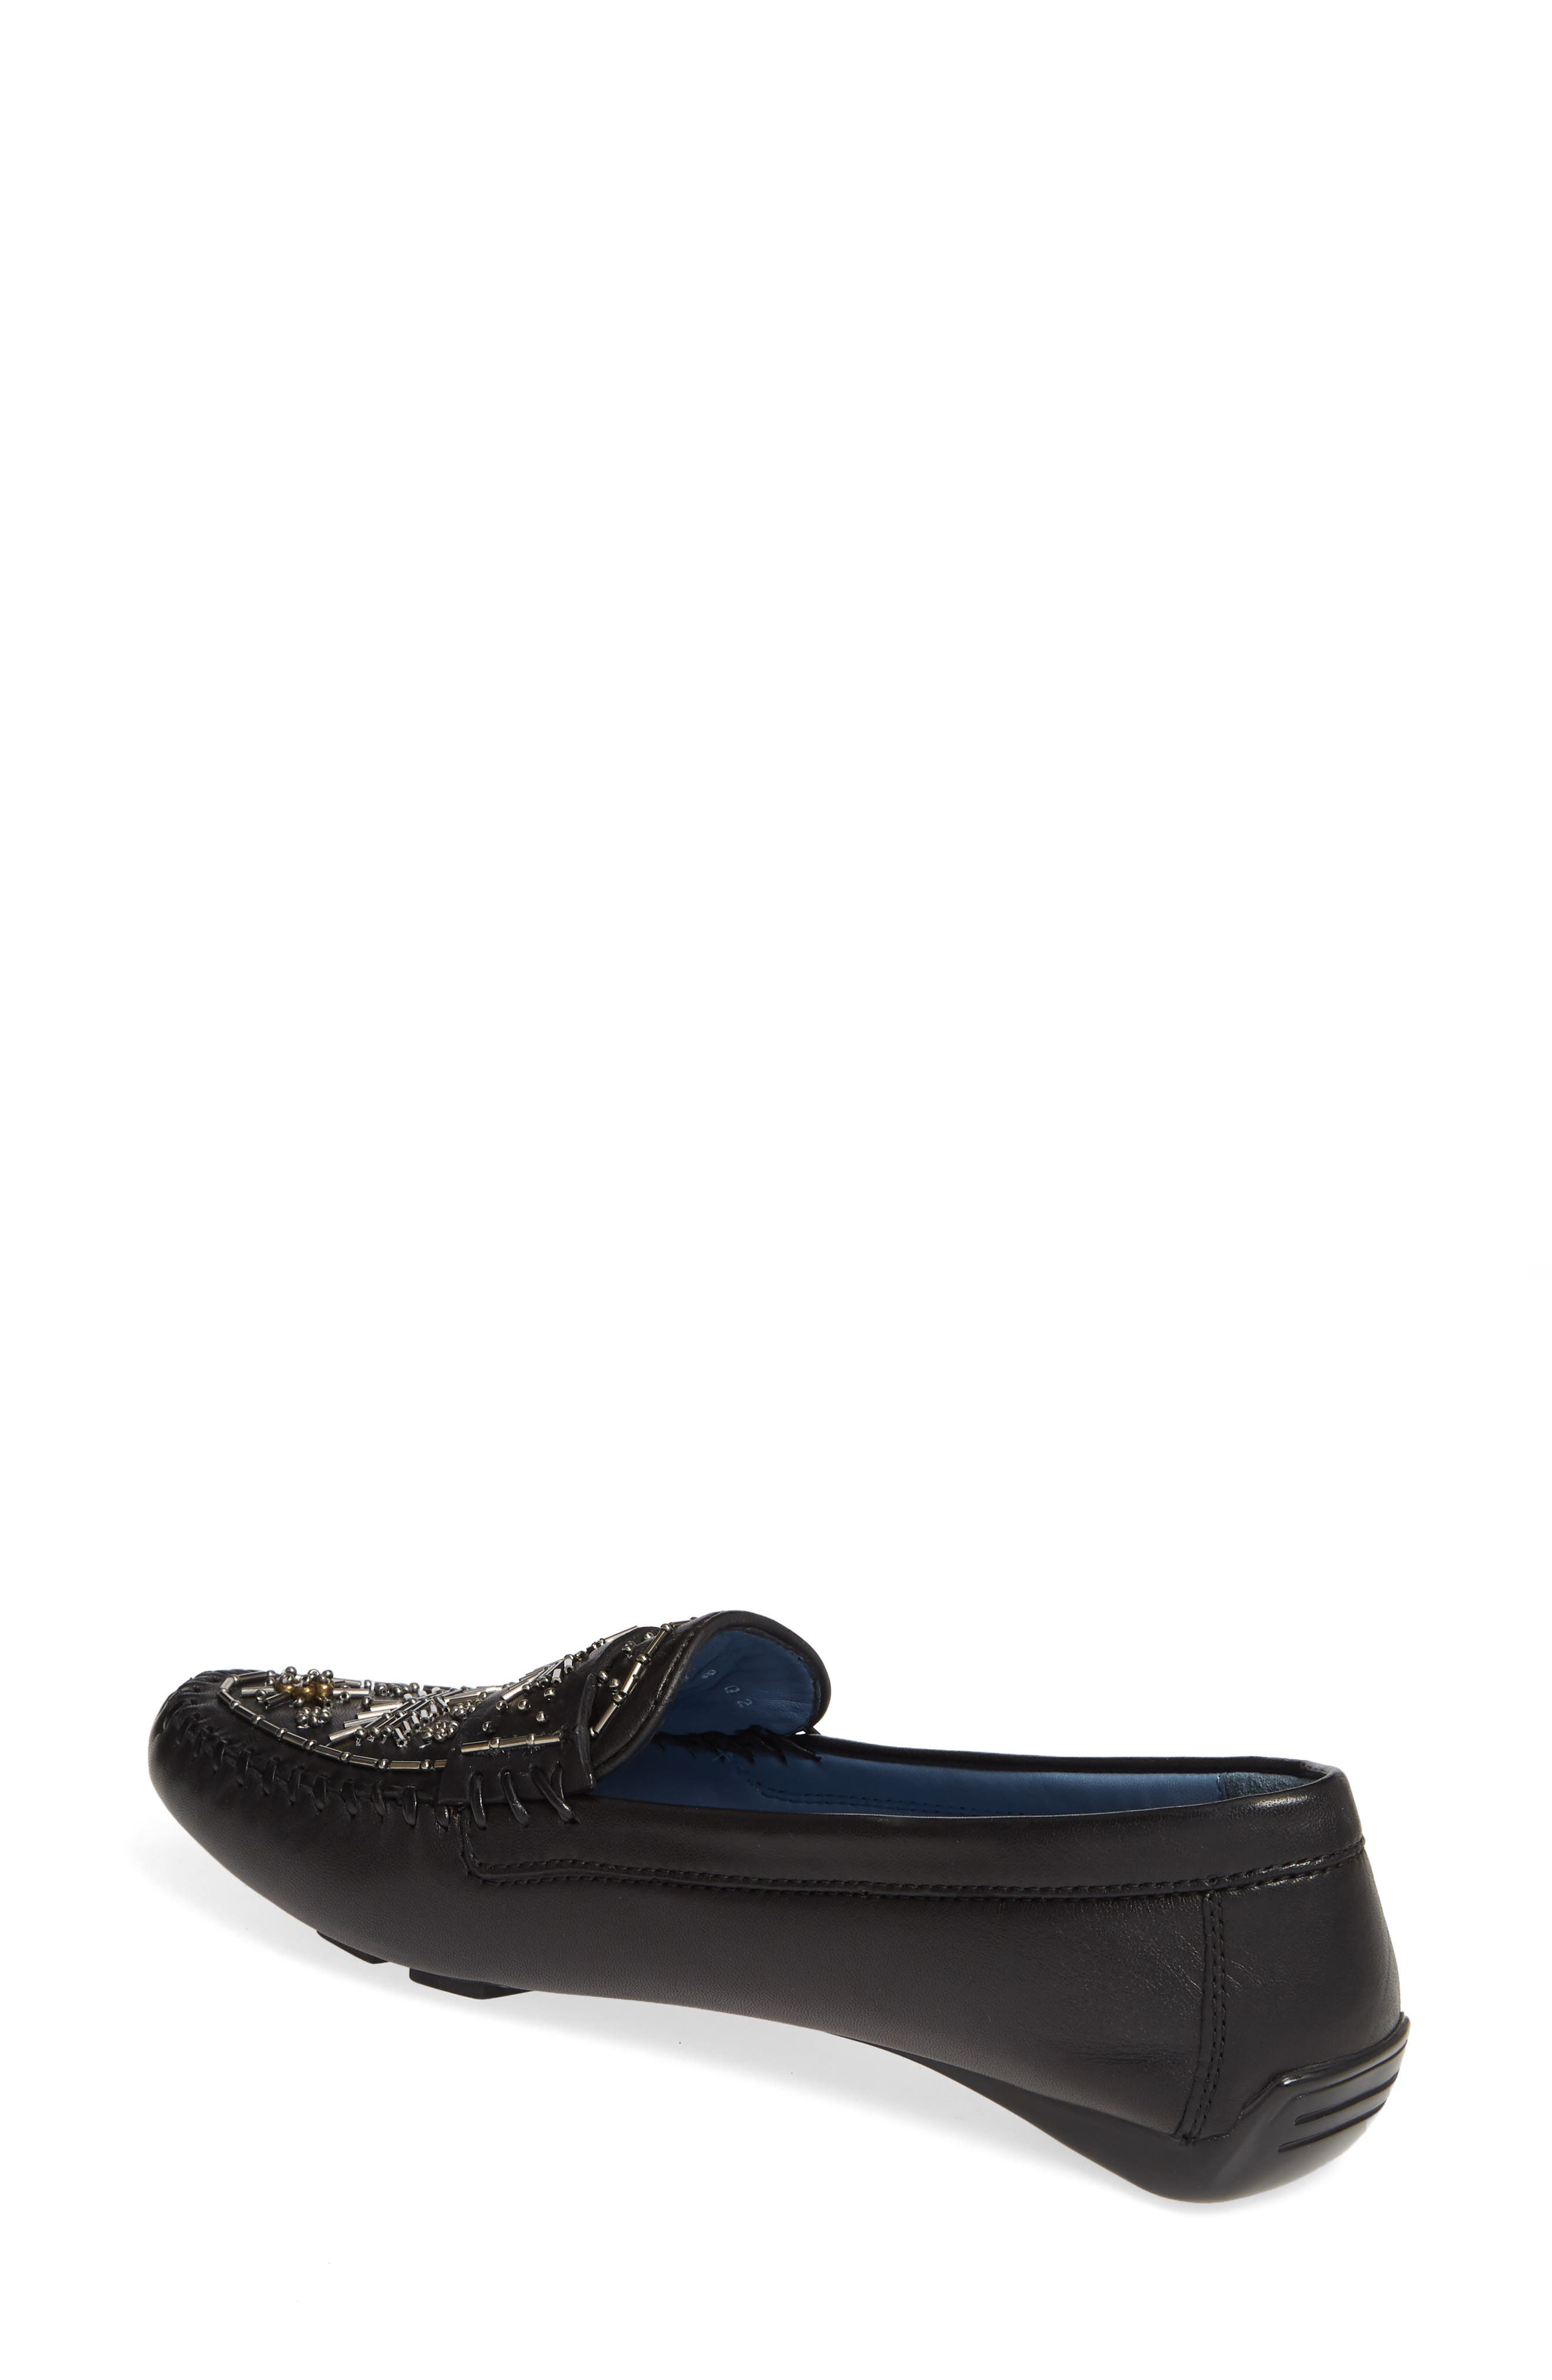 ROBERT ZUR, Majorca Embellished Loafer, Alternate thumbnail 2, color, BLACK TGLOVE